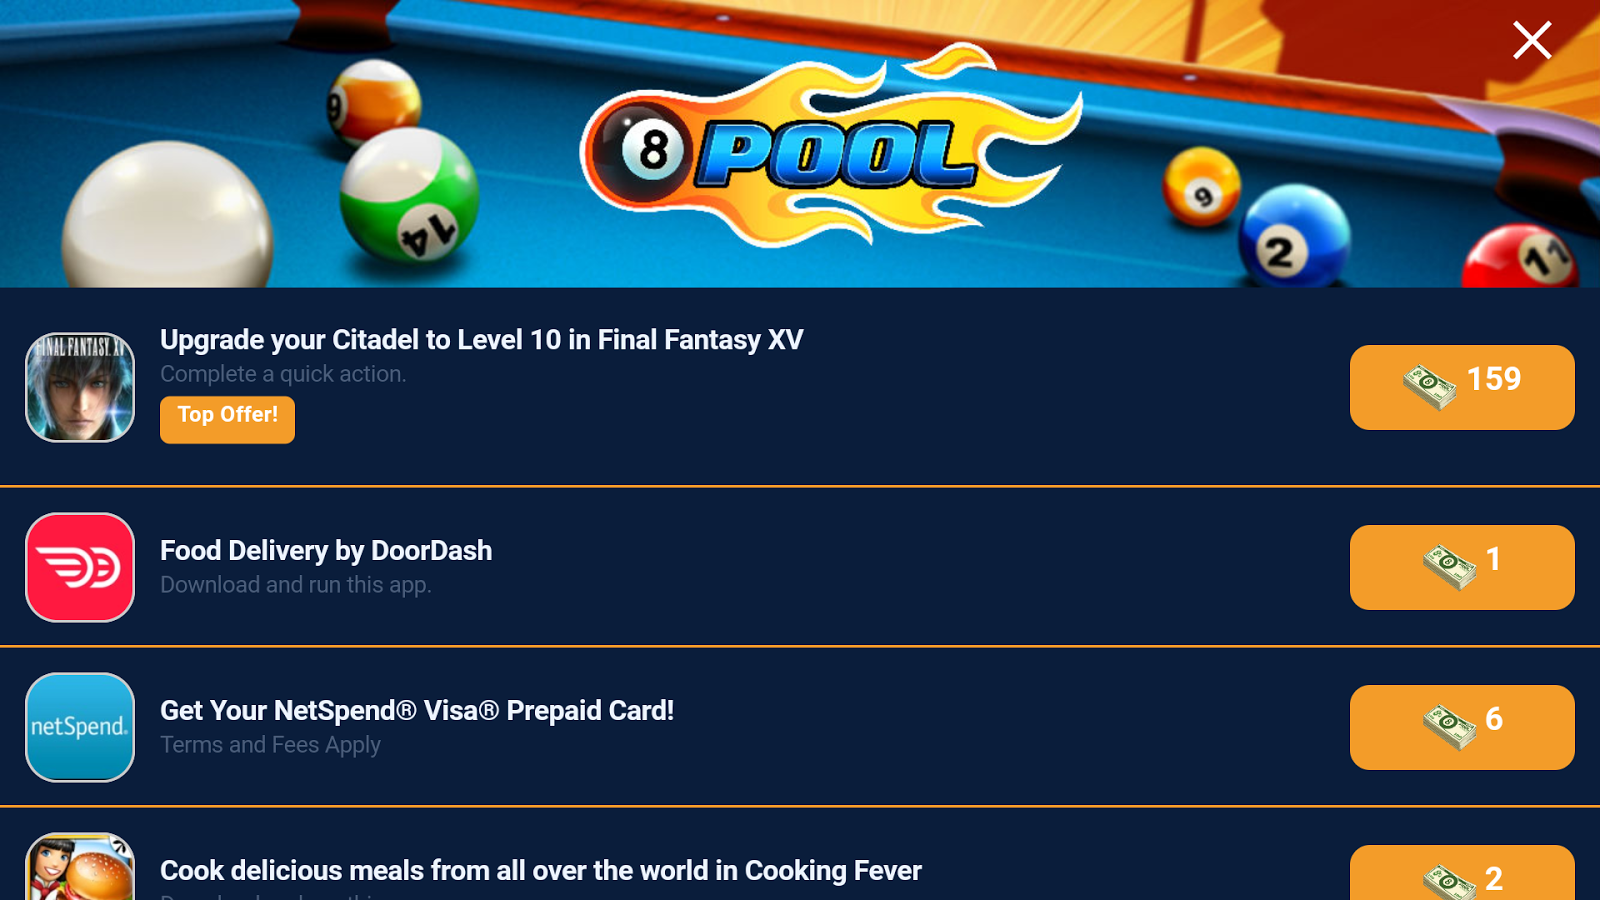 Cash Pool Vs. Cash Group 8 Ball Pool New Cash Trick Get 159 Free Cash In Your